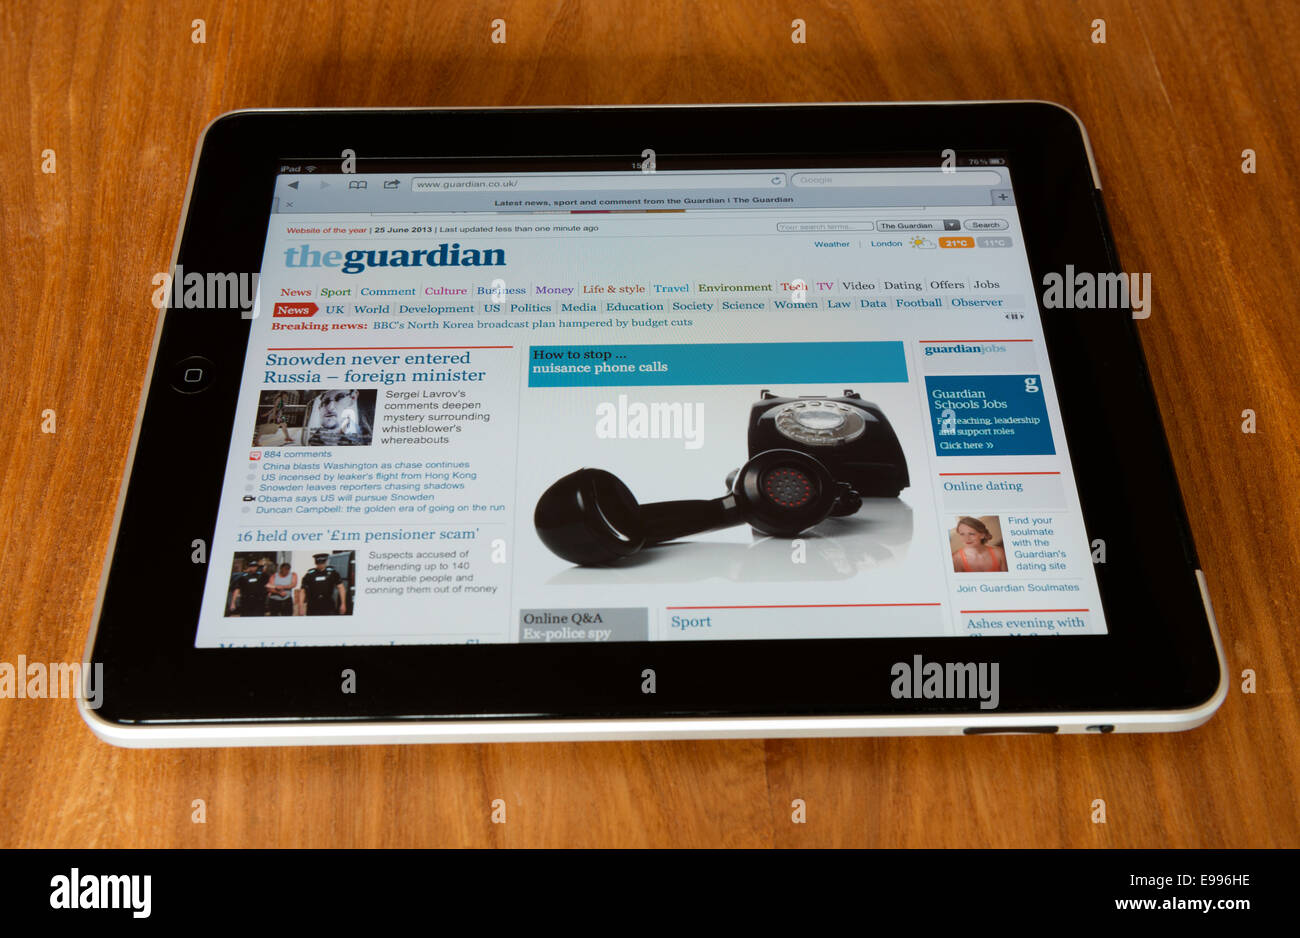 Apple iPad displaying the Guardian newspaper homepage with 'how to stop nuisance telephone calls' - Stock Image